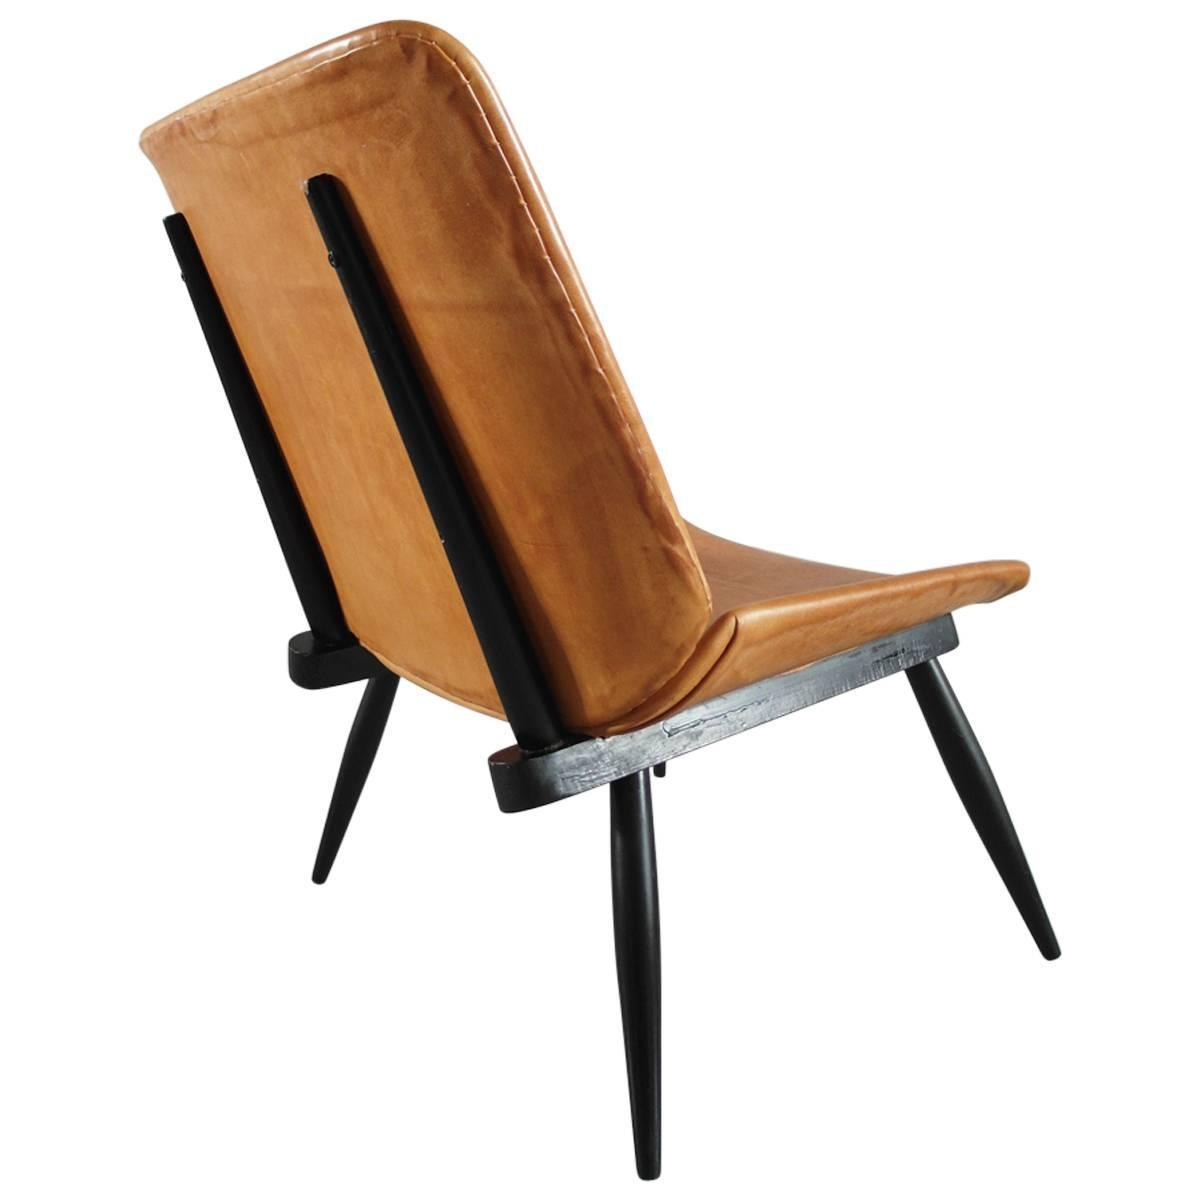 Tapiovaara Style Scandinavian Leather Easy Chair with